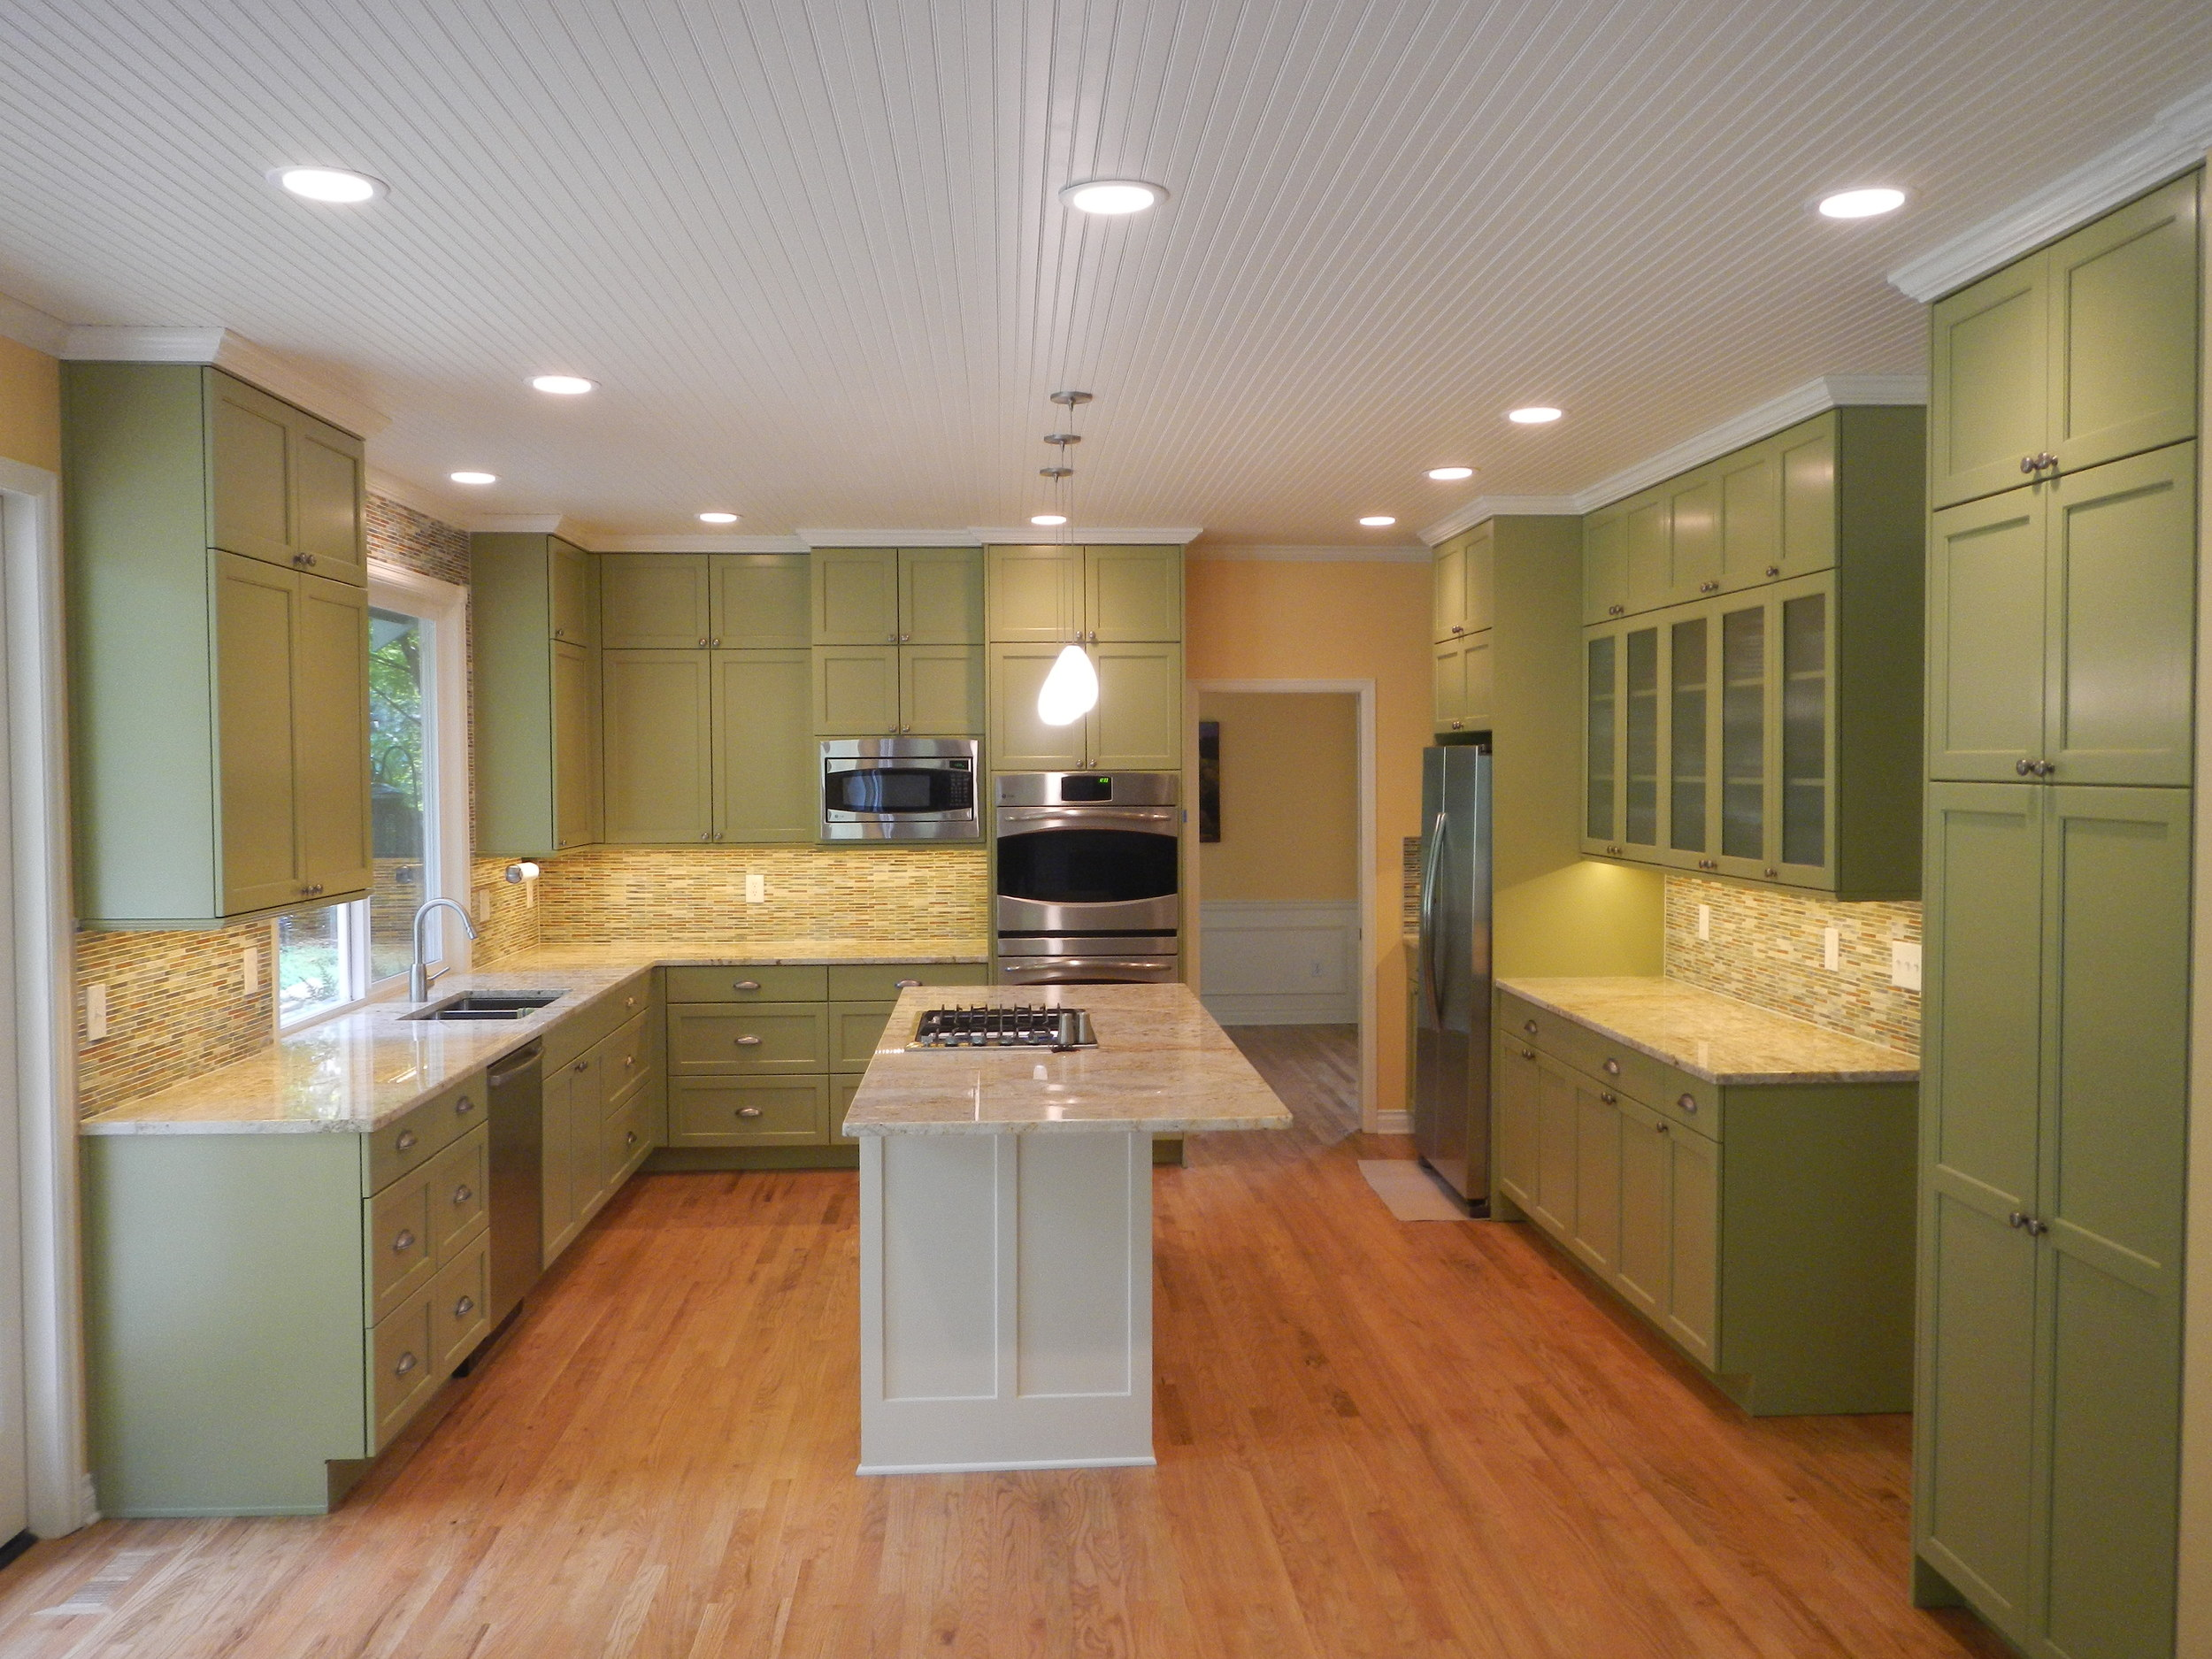 24 Lake of the Woods Kitchen.JPG